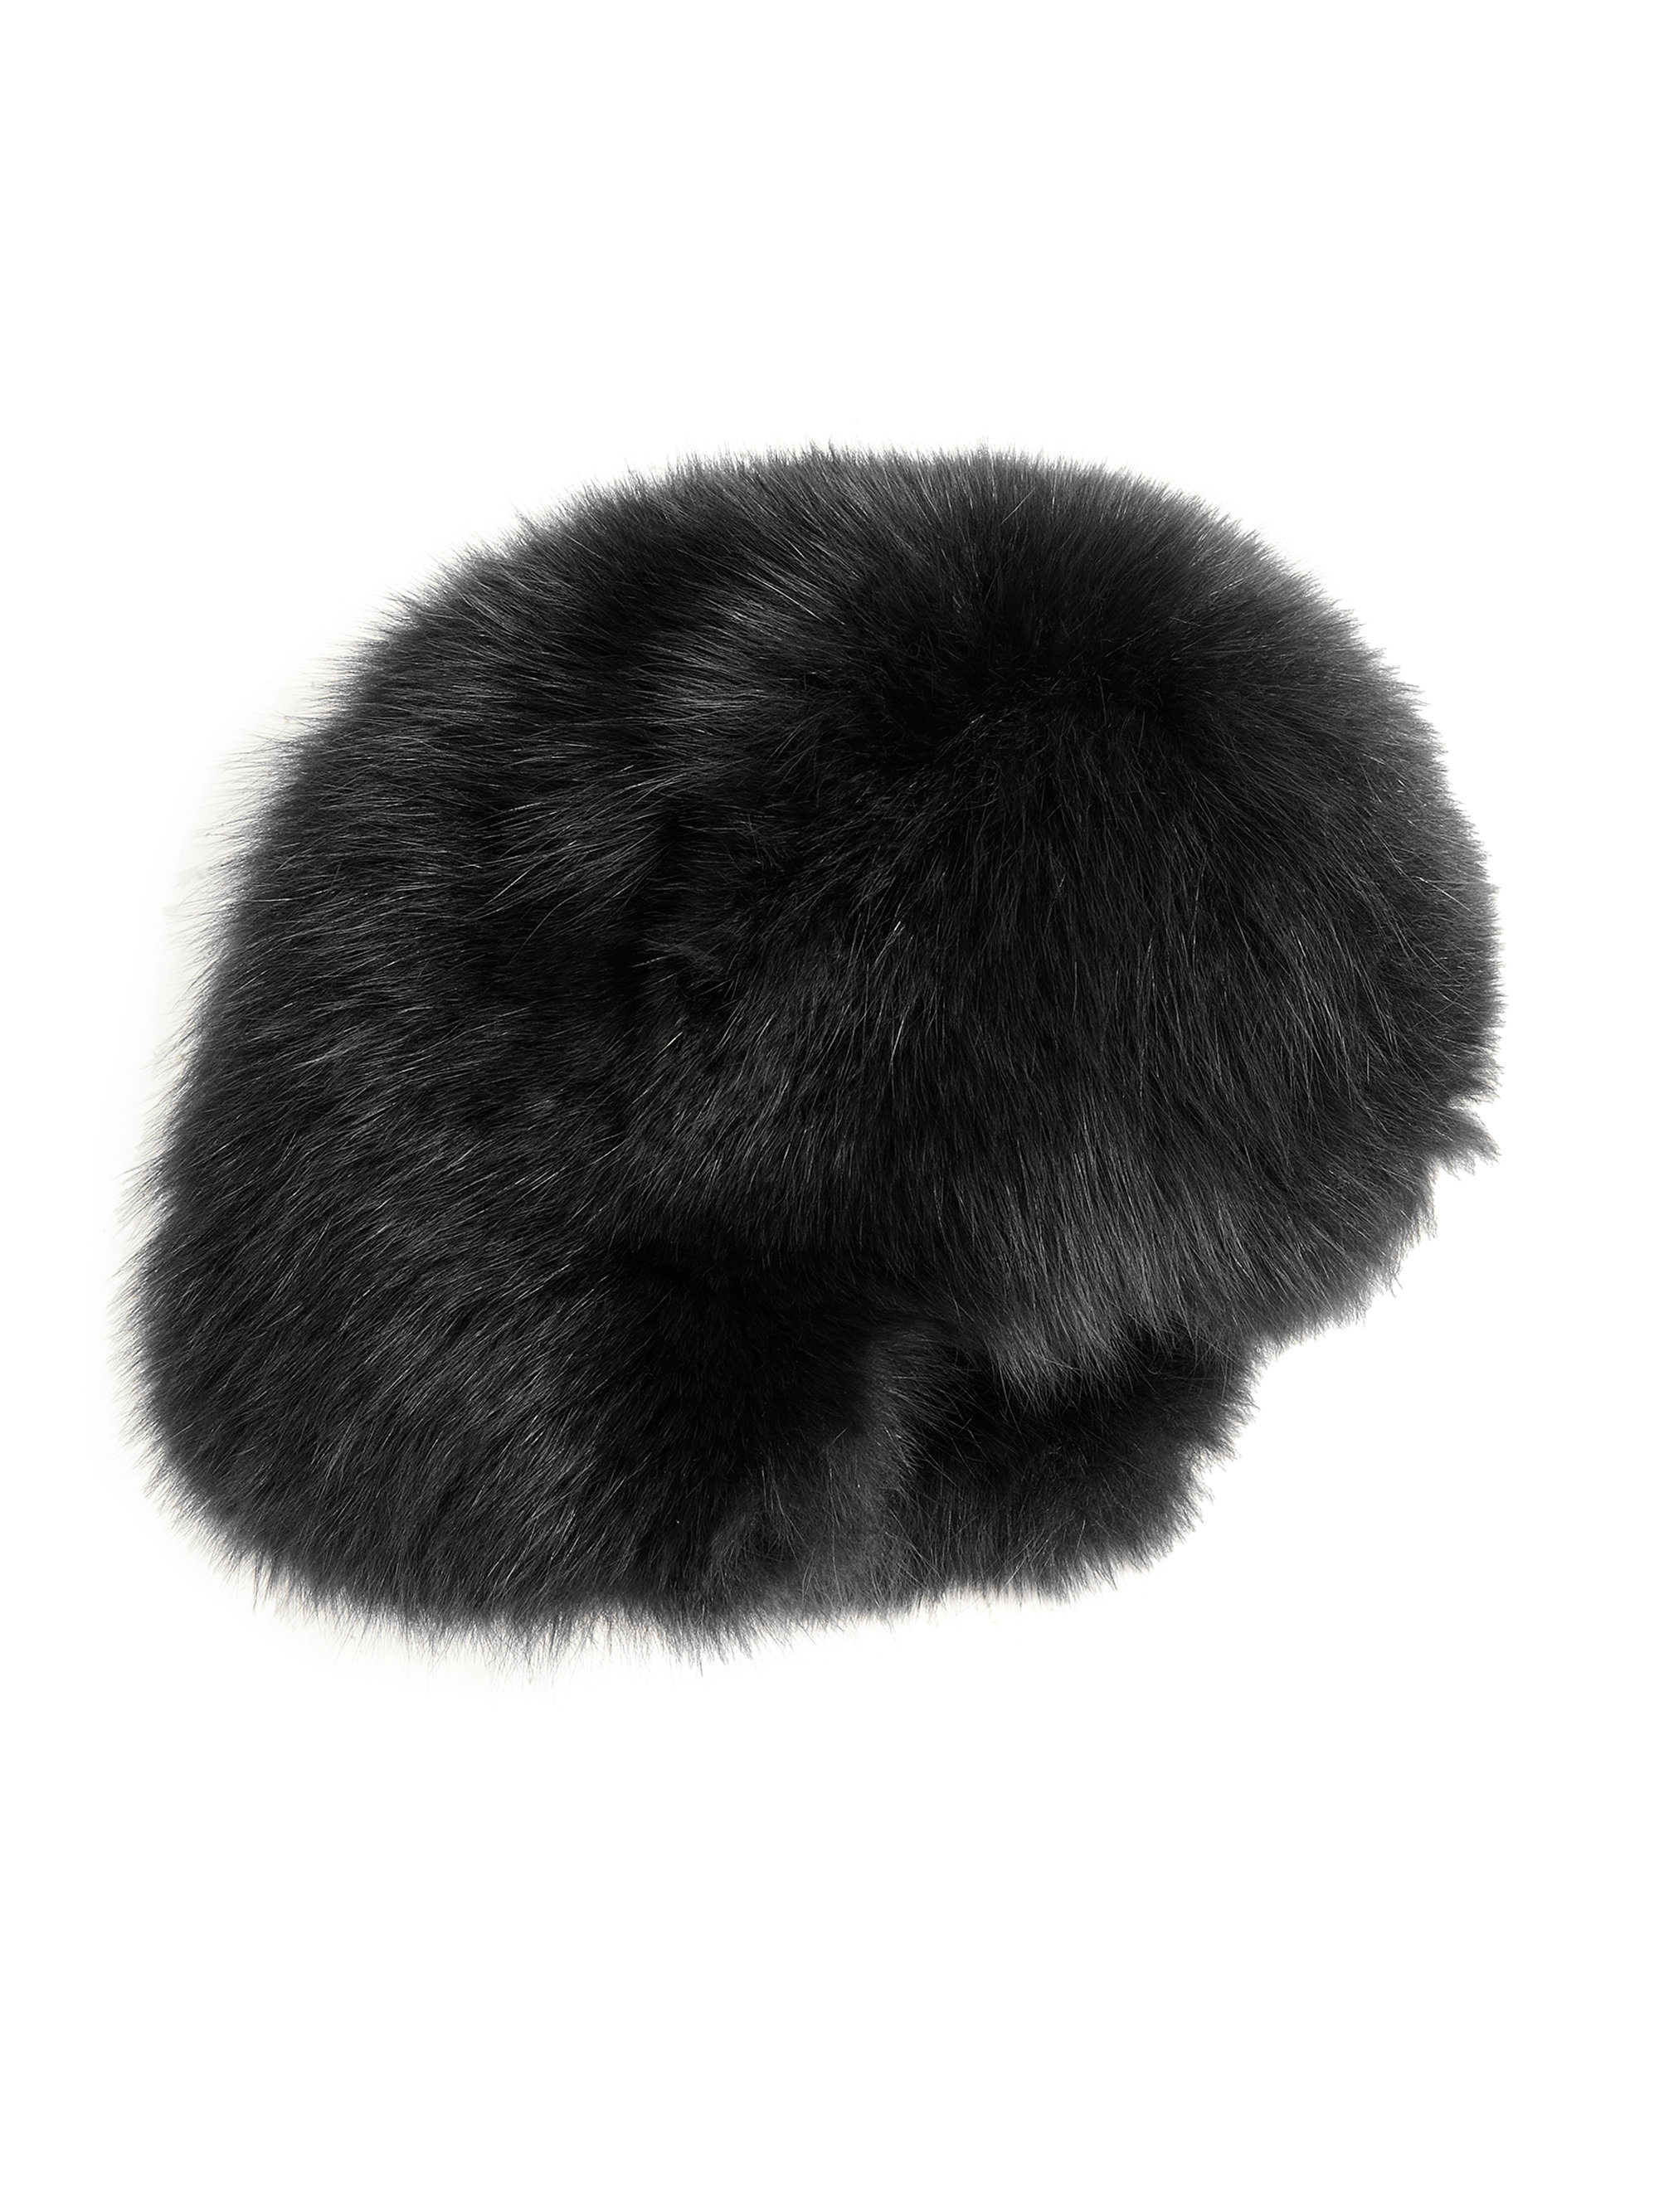 Lyst - Moncler Fur Hat in Black 6160266c5a8